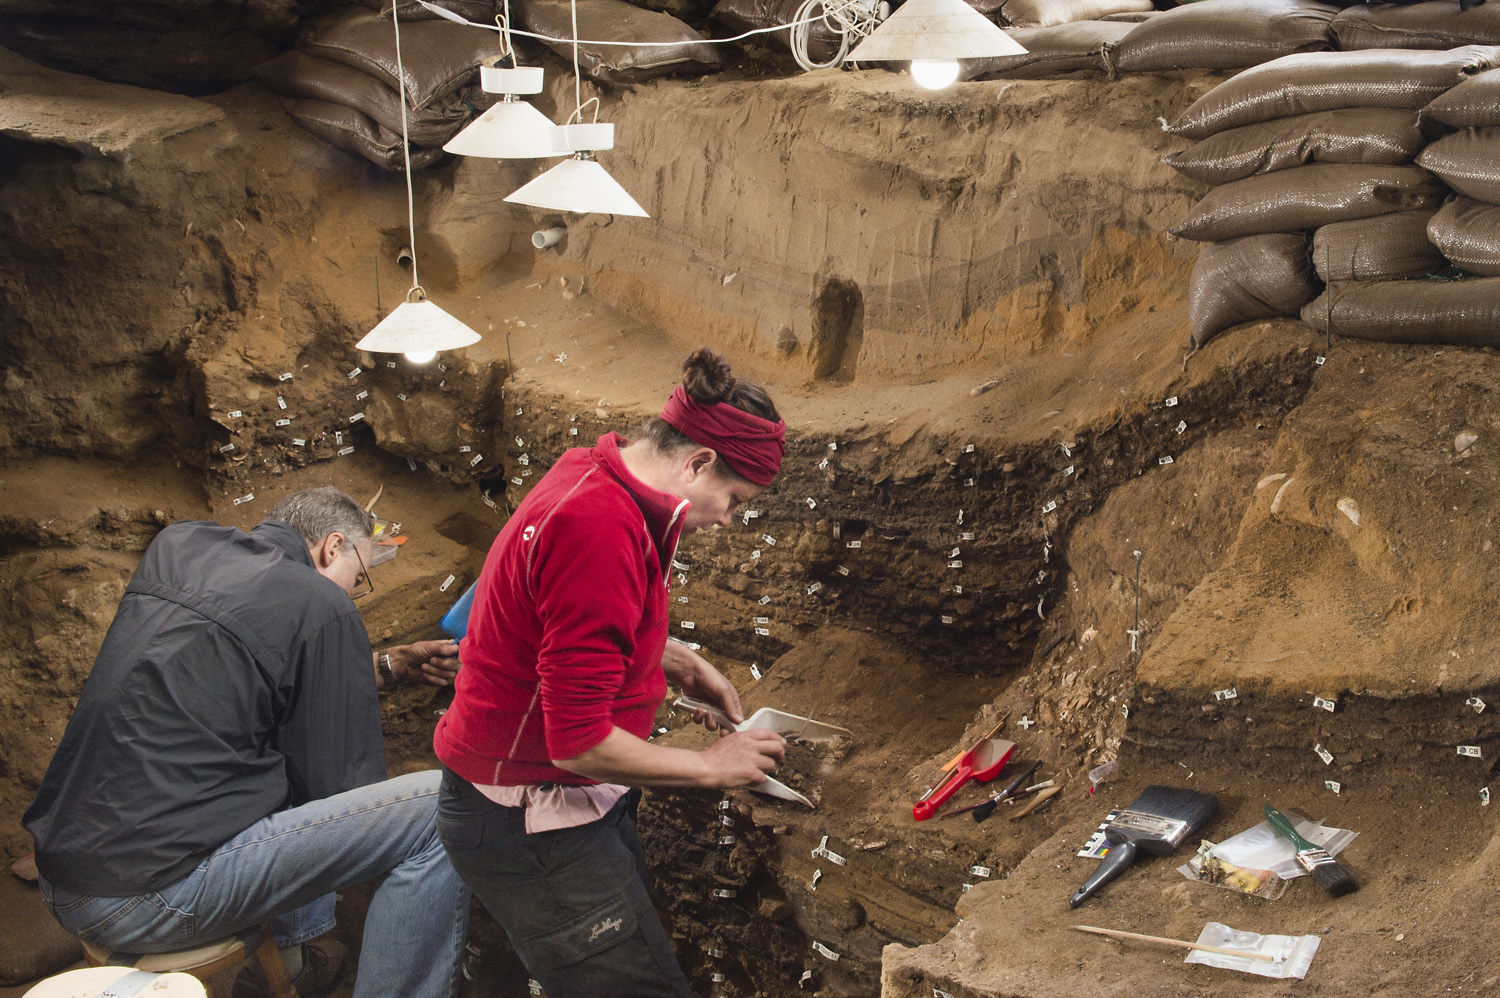 Archaeologists have been excavating South Africa's Blombos Cave since 1991.